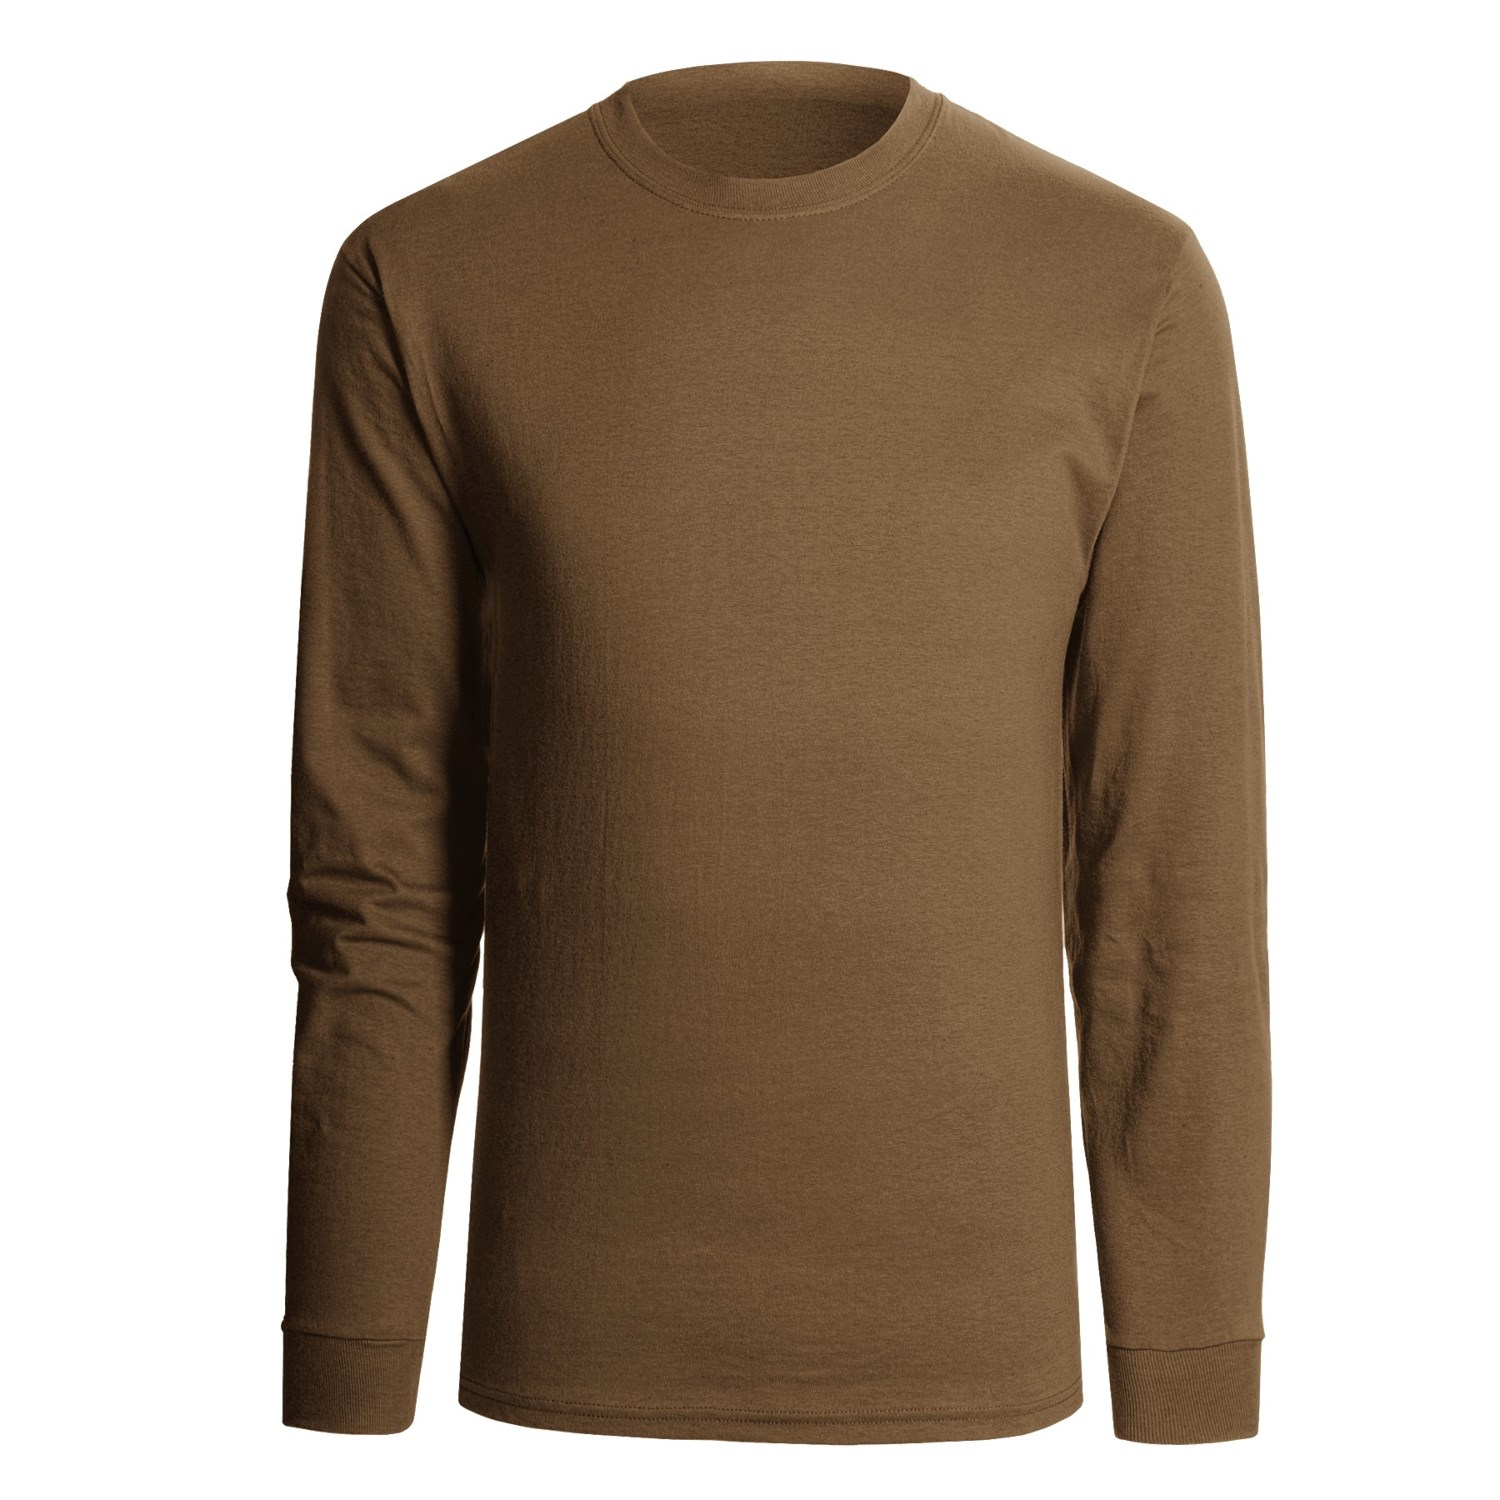 Buy brown long sleeve t shirt - 57% OFF! Share discount 5877313a925